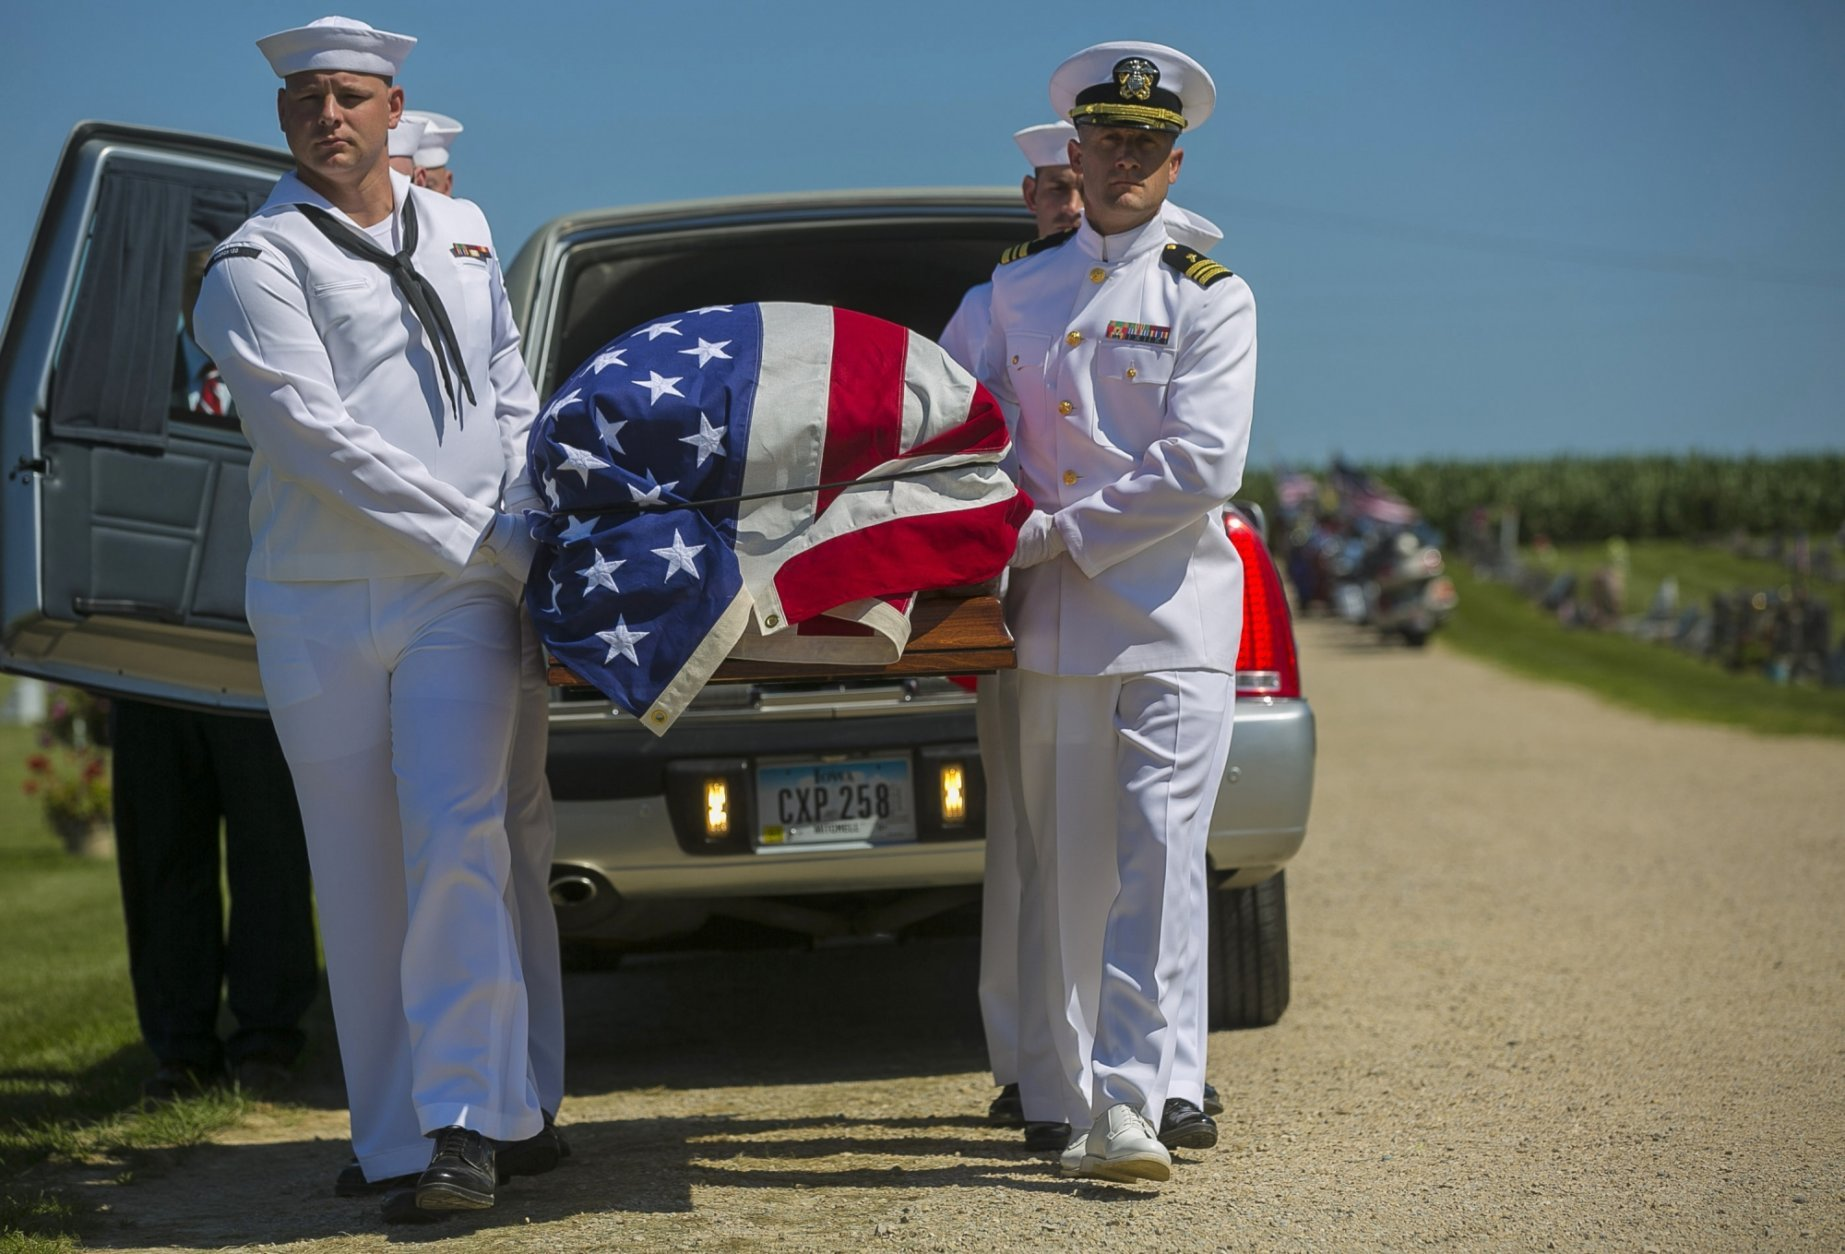 FILE - In this July 7, 2018 file photo, U.S. Navy sailors remove the casket with the remains of Seaman First Class Leon Arickx from a hearse at Sacred Heart Cemetery where they will be put to rest in Osage, Iowa. Arickx' remains, which were unidentifiable after his death after the Japanese attack at Pearl Harbor in 1941, were identified through DNA testing earlier this year. More than three-quarters of a century after the devastating attack killed nearly 2,400 in Hawaii, the bodies of some sailors killed at Pearl Harbor are finally being laid to rest. (Chris Zoeller/Globe-Gazette via AP, File)